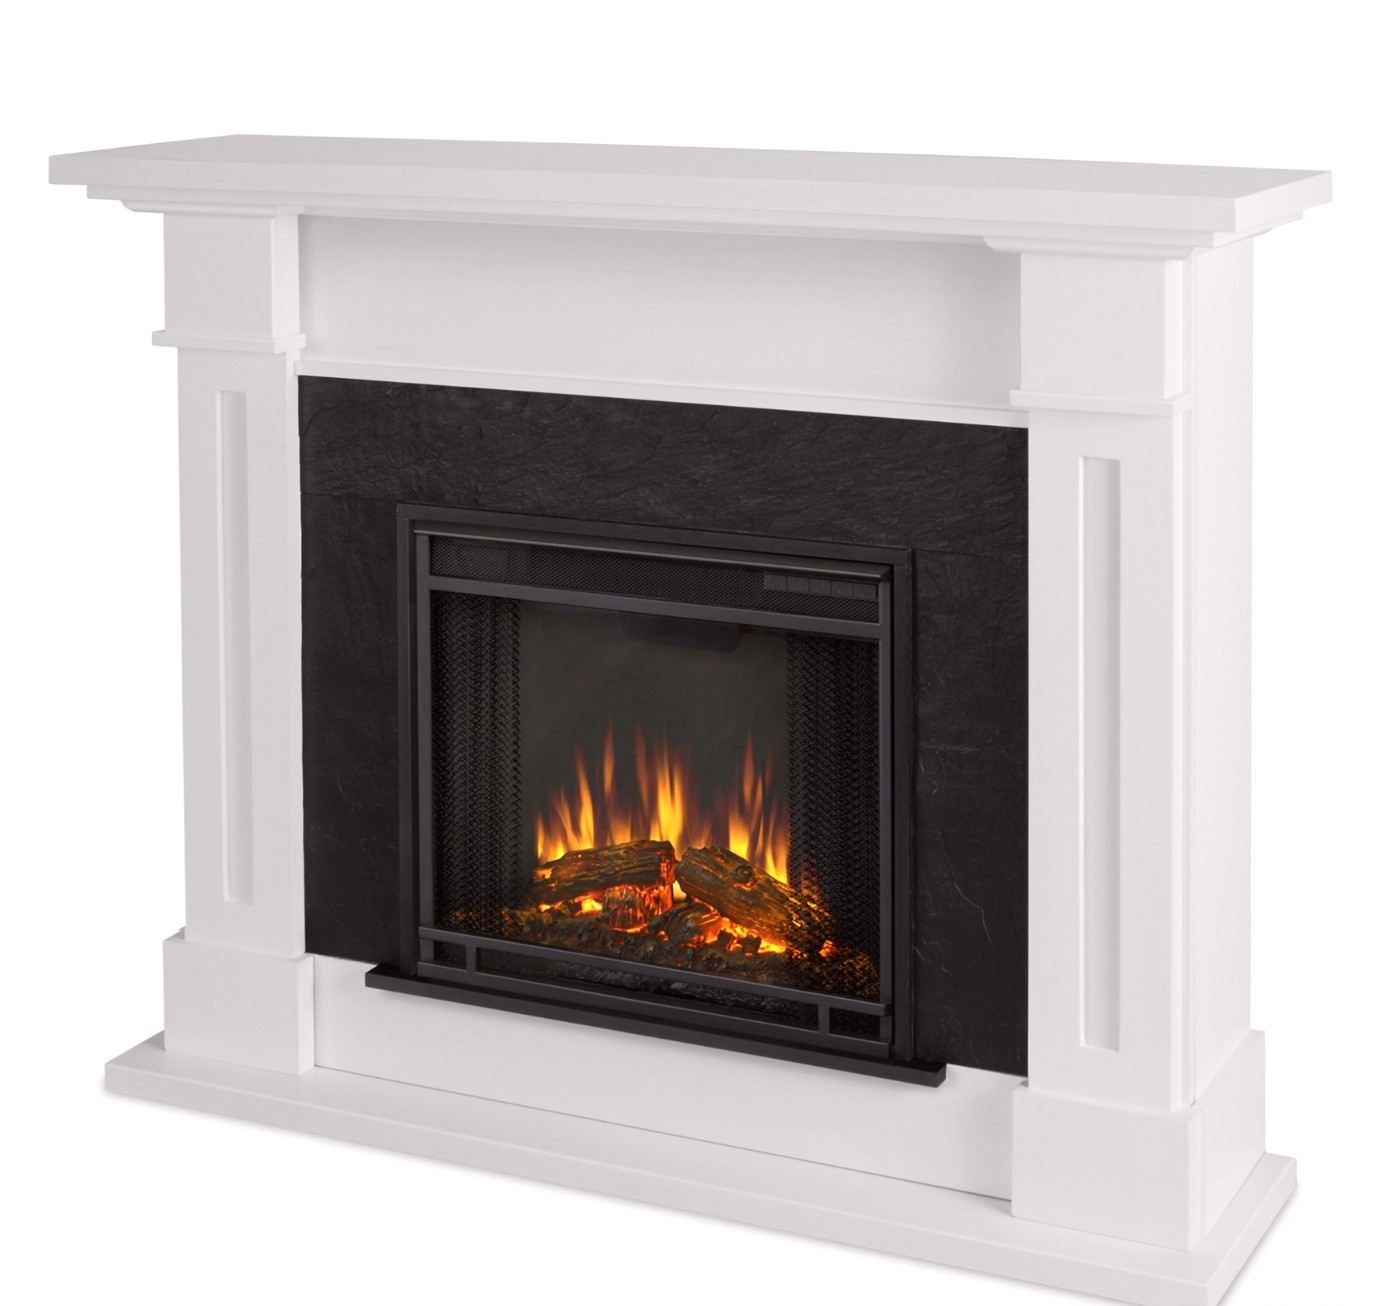 Kipling Electric Heater Led Fireplace In White 4700btu 54x42